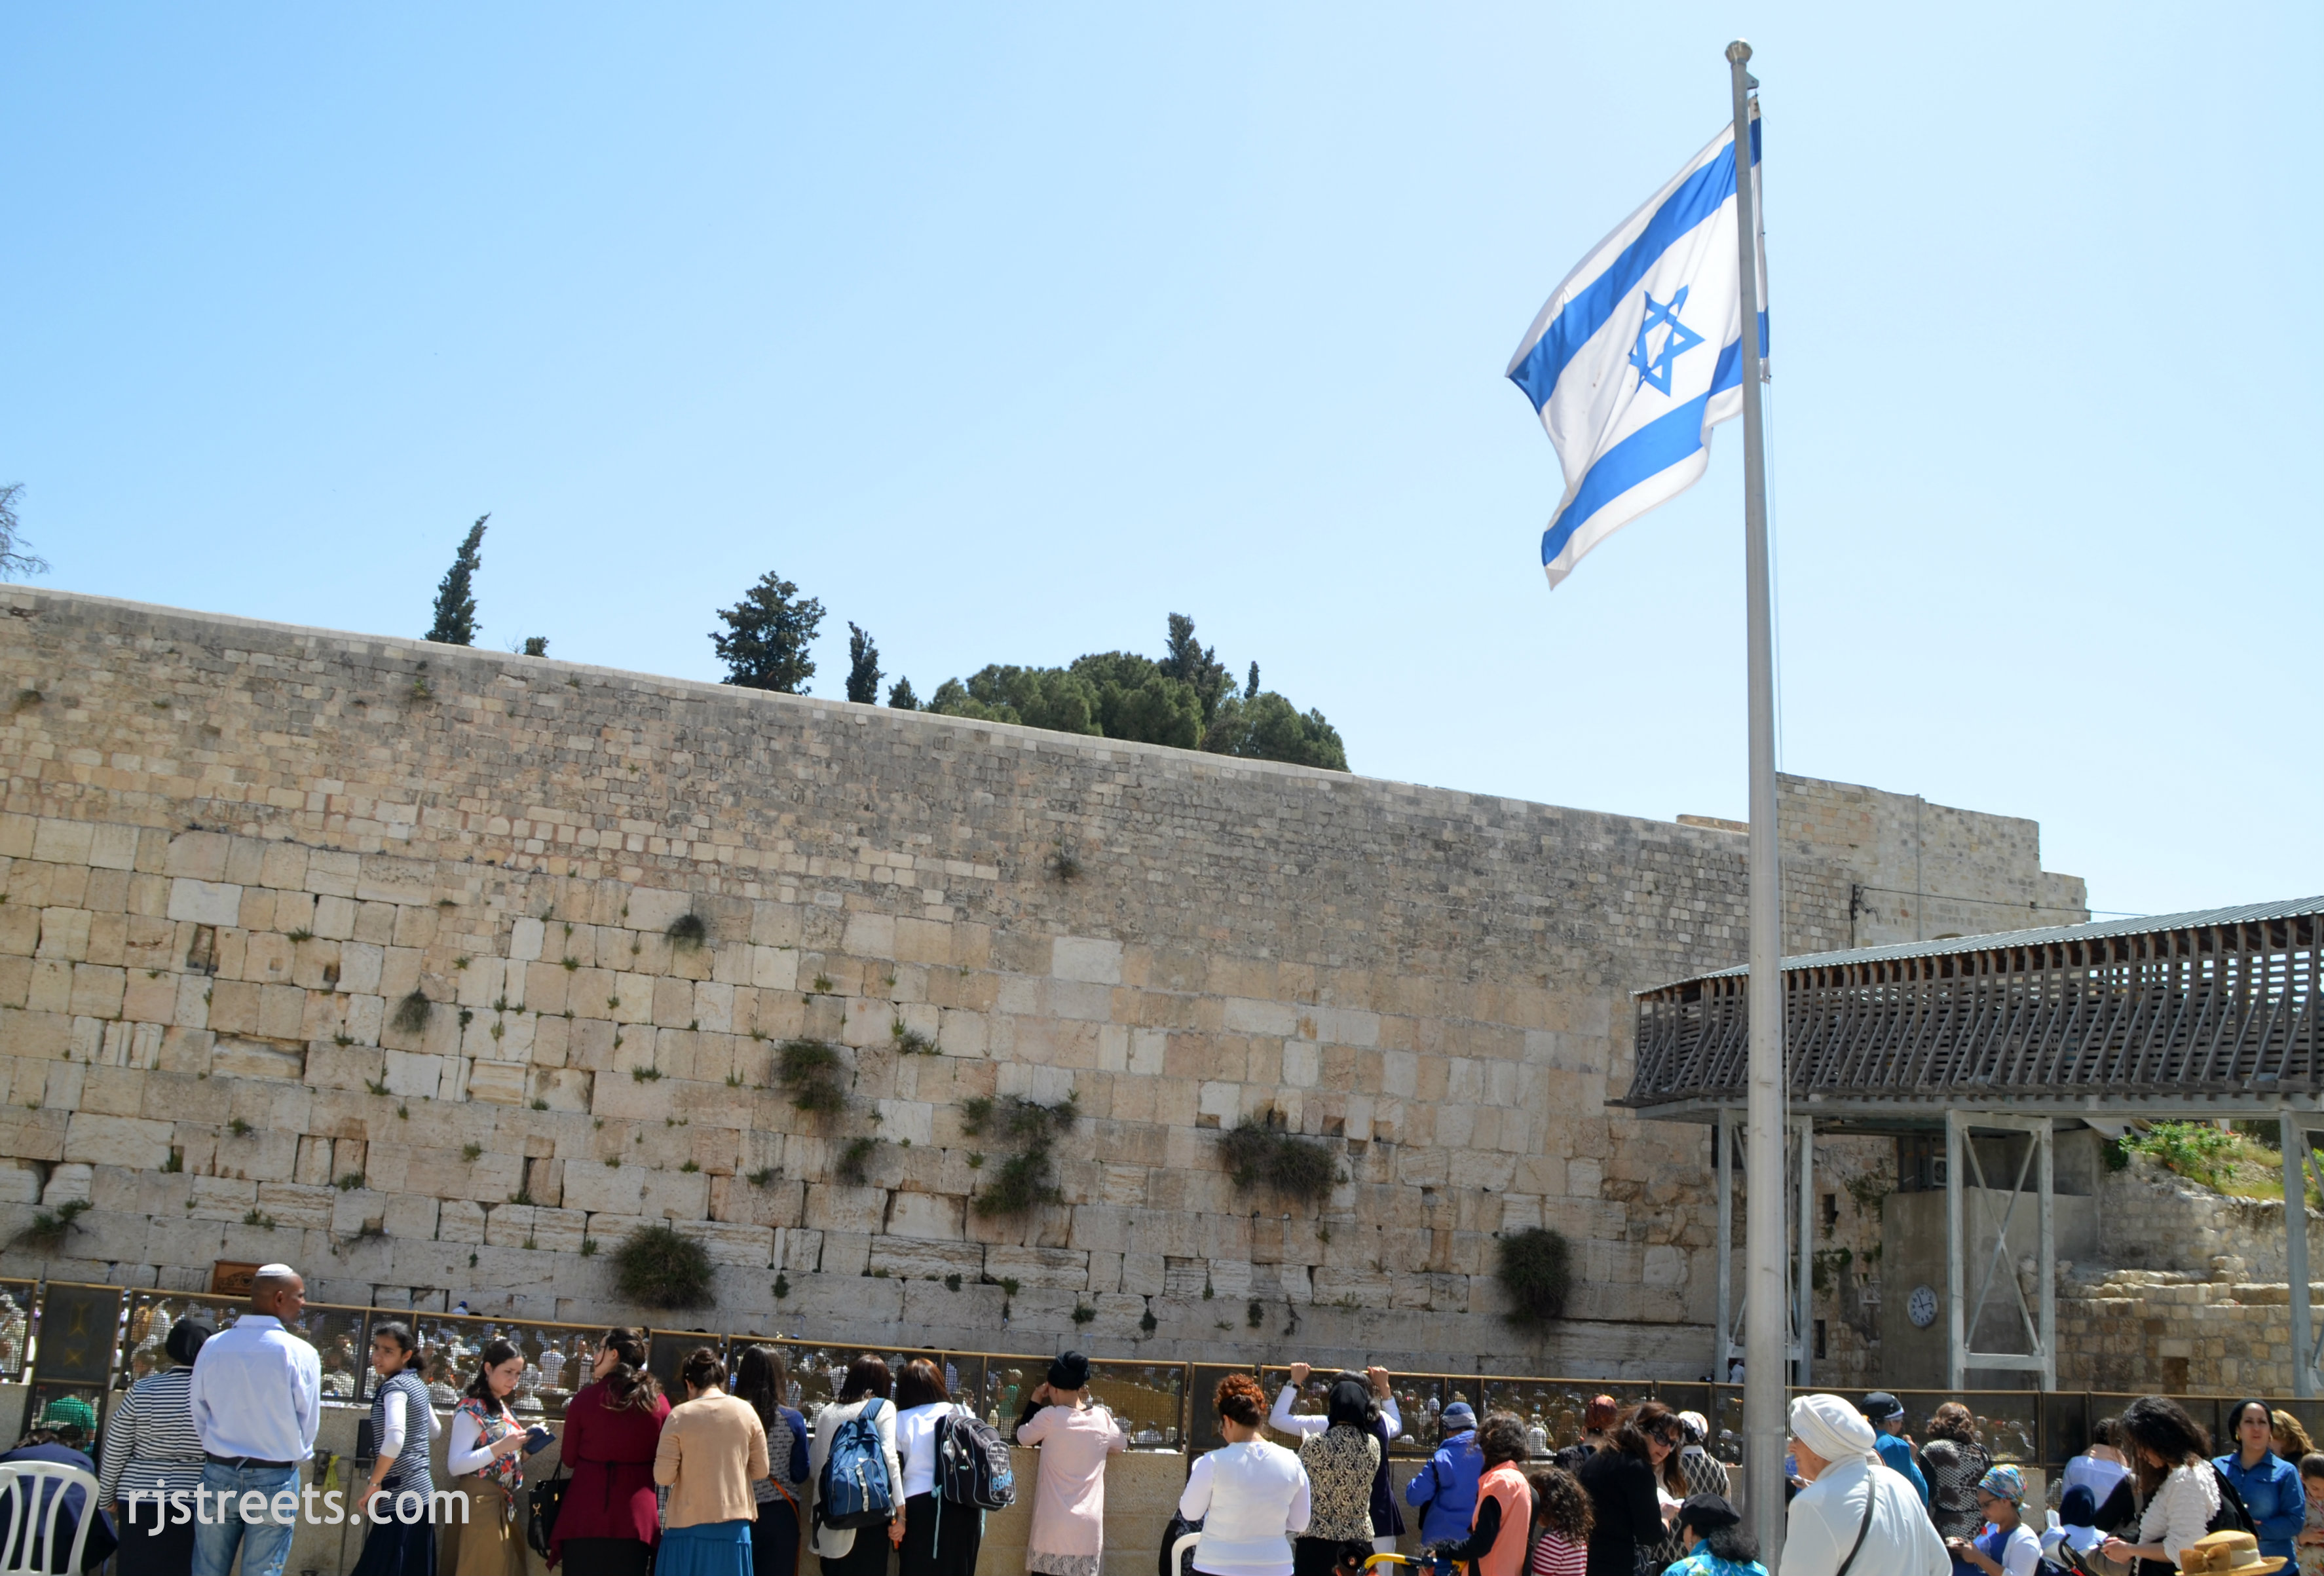 image passover, photo wailing wall, picture Al-Quds